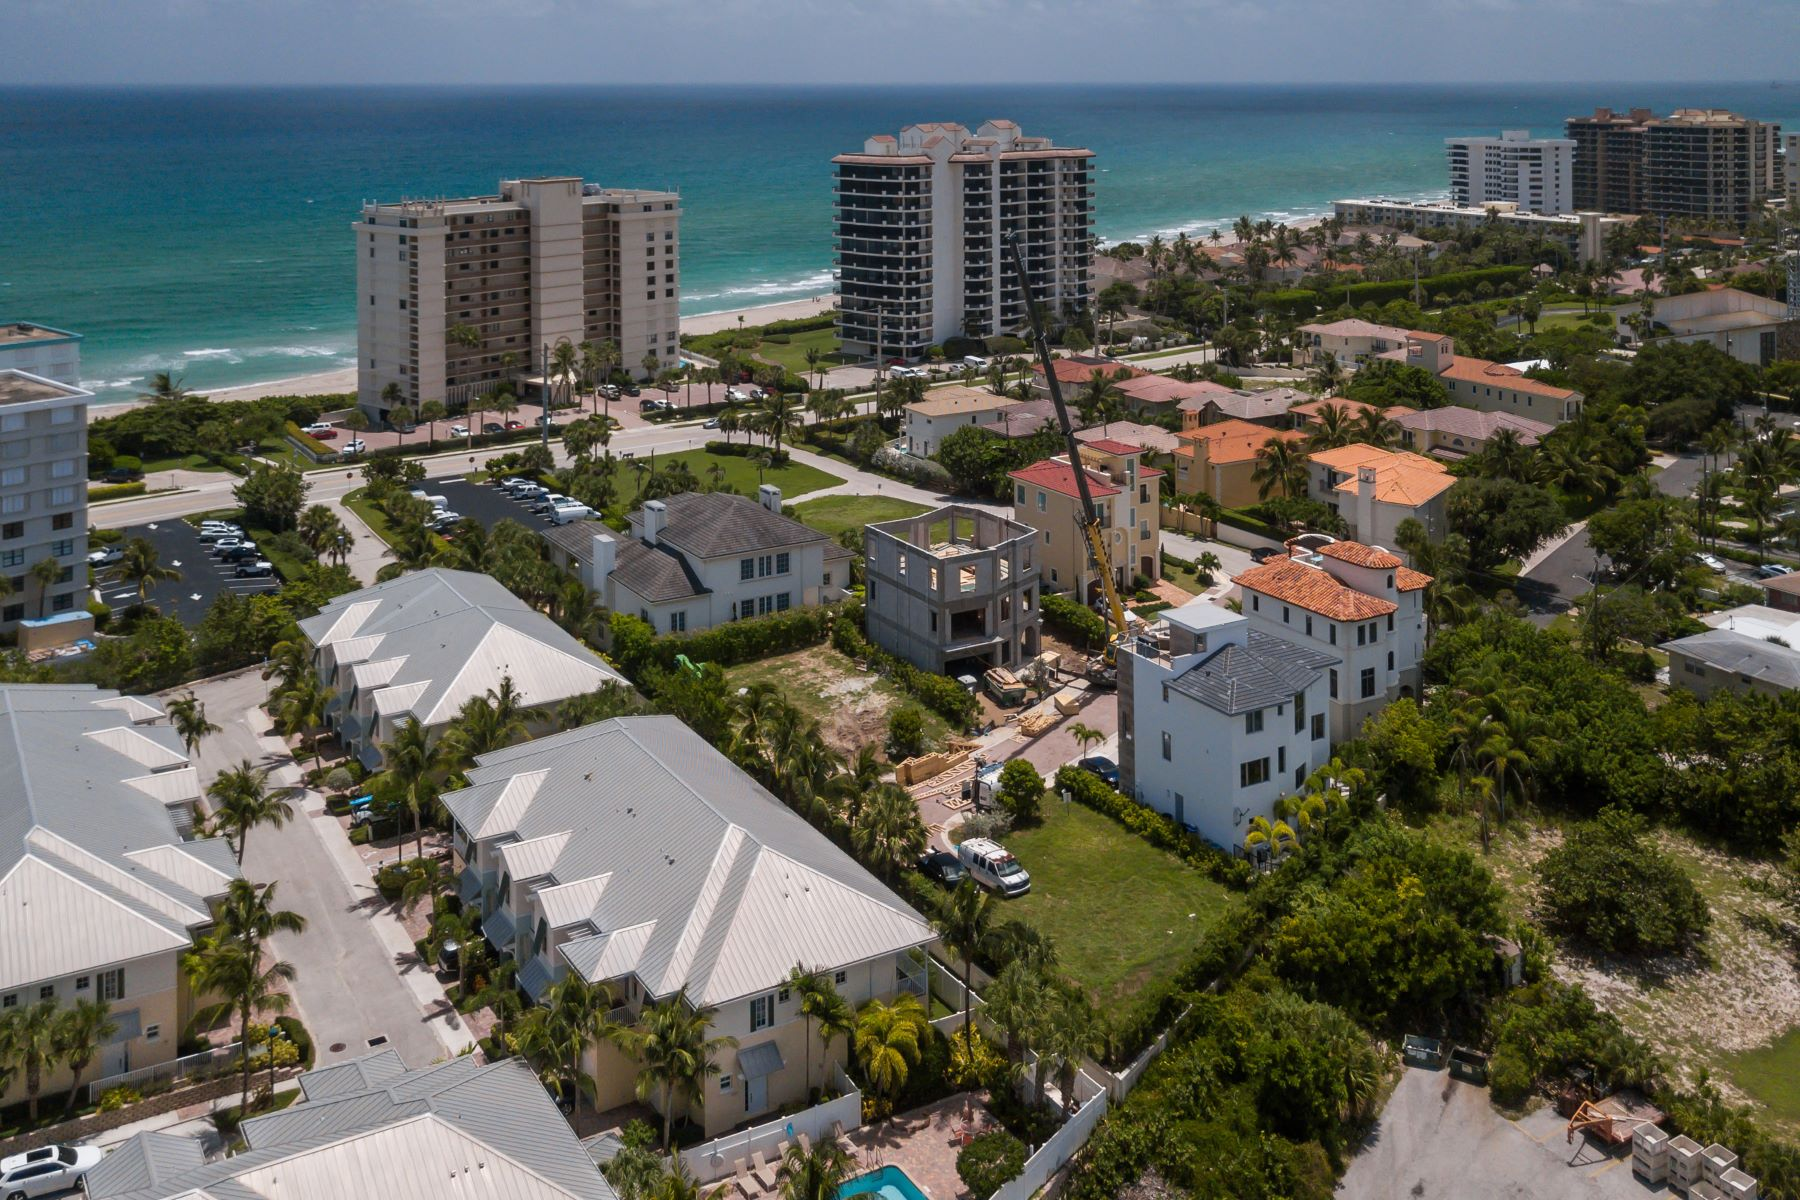 Single Family Homes for Sale at Juno Beach, Florida 33408 United States